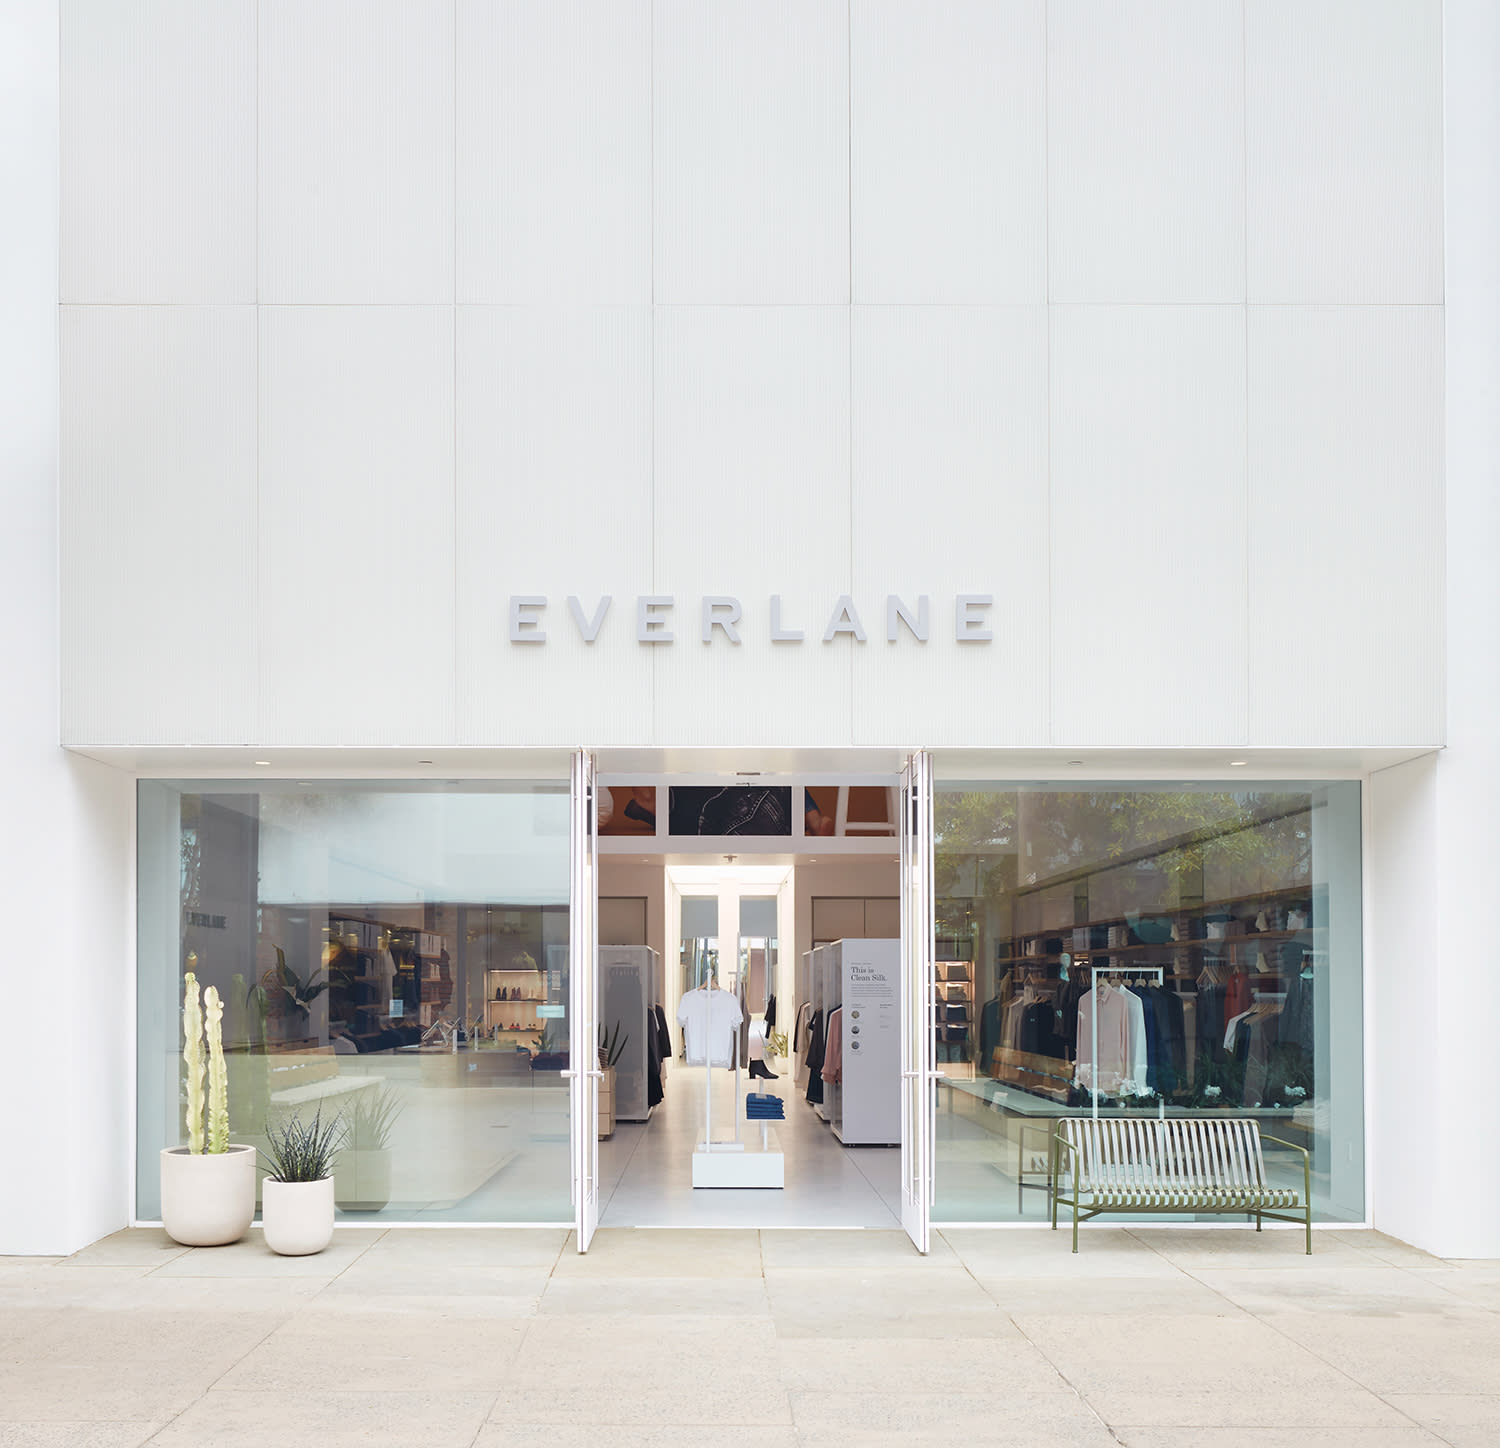 My Everlane Jeans Review: Is Their Denim Worth It?